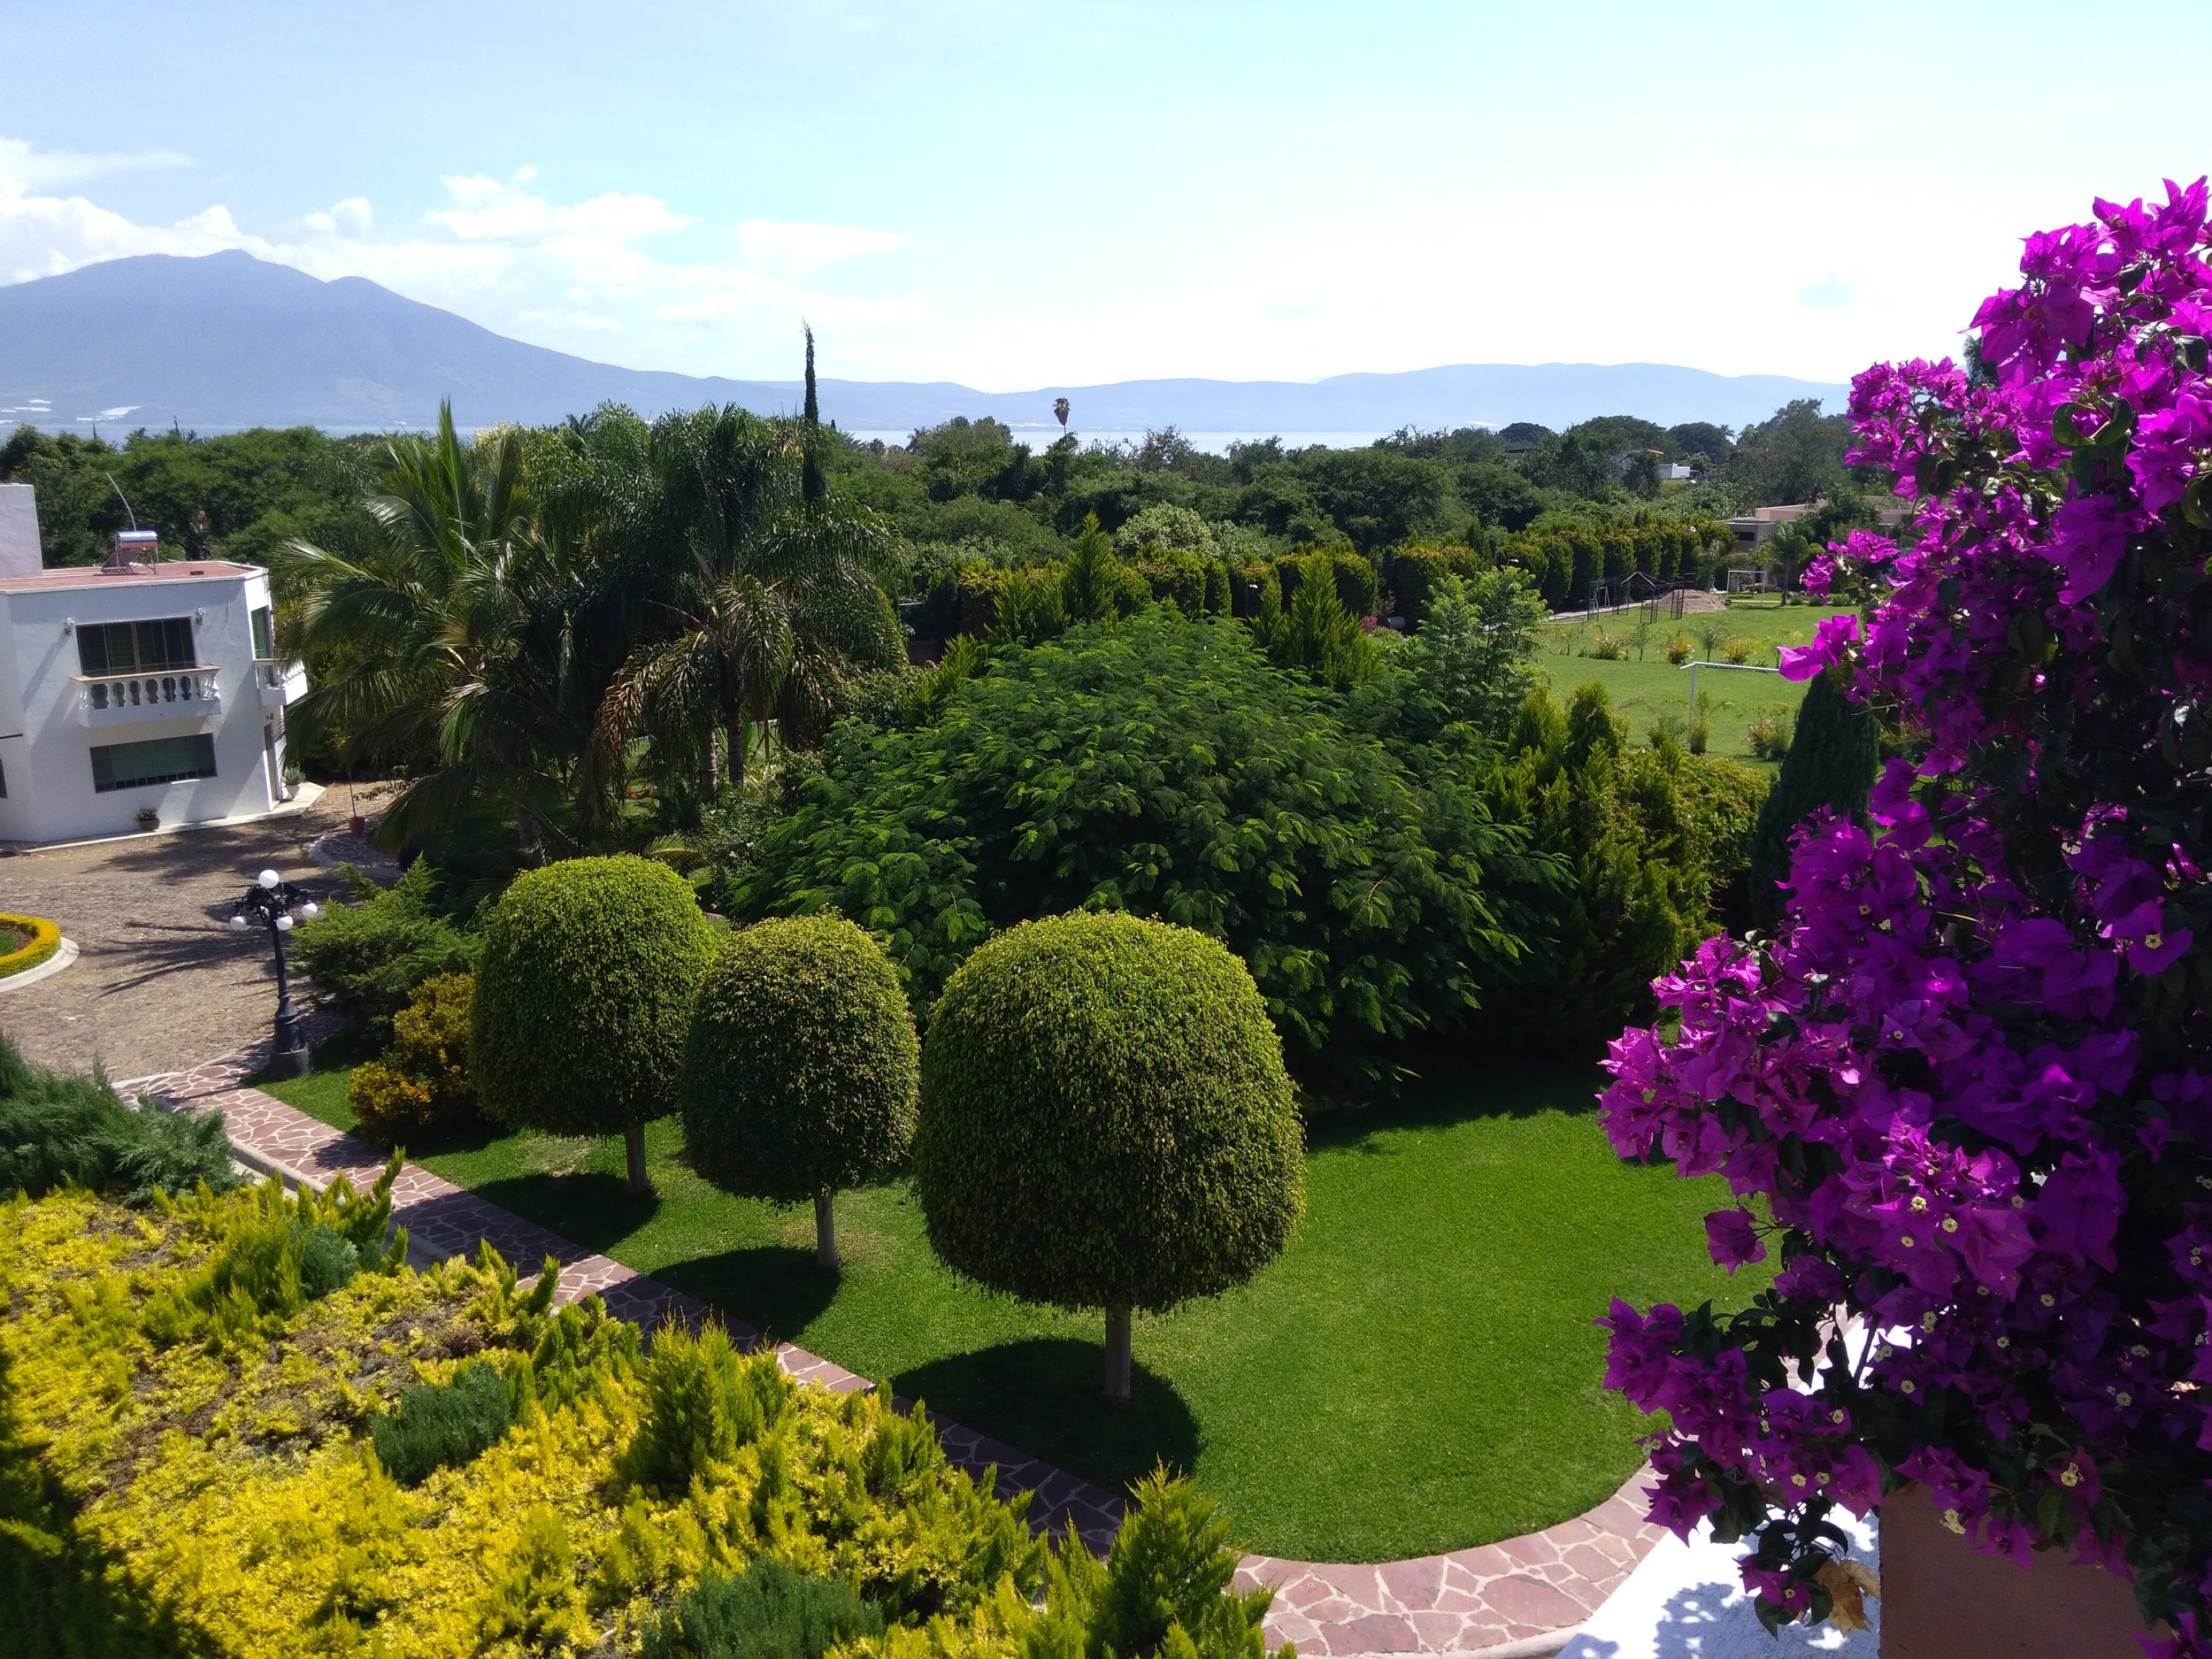 Women's Writing Retreat with Kay Adams ~Feb 3-8, 2019 ~Ajijic, Mexico ~ - Ajijic is 30 minutes from Guadalajara's international airport. Your transport from/to airport is arranged for you. Ajijic has the world's second-best climate, according to National Geographic. A safe and vibrant retirement community popular with Americans and Europeans, Ajijic is the perfect remedy to winter.CLICK BELOW TO LEARN MORE